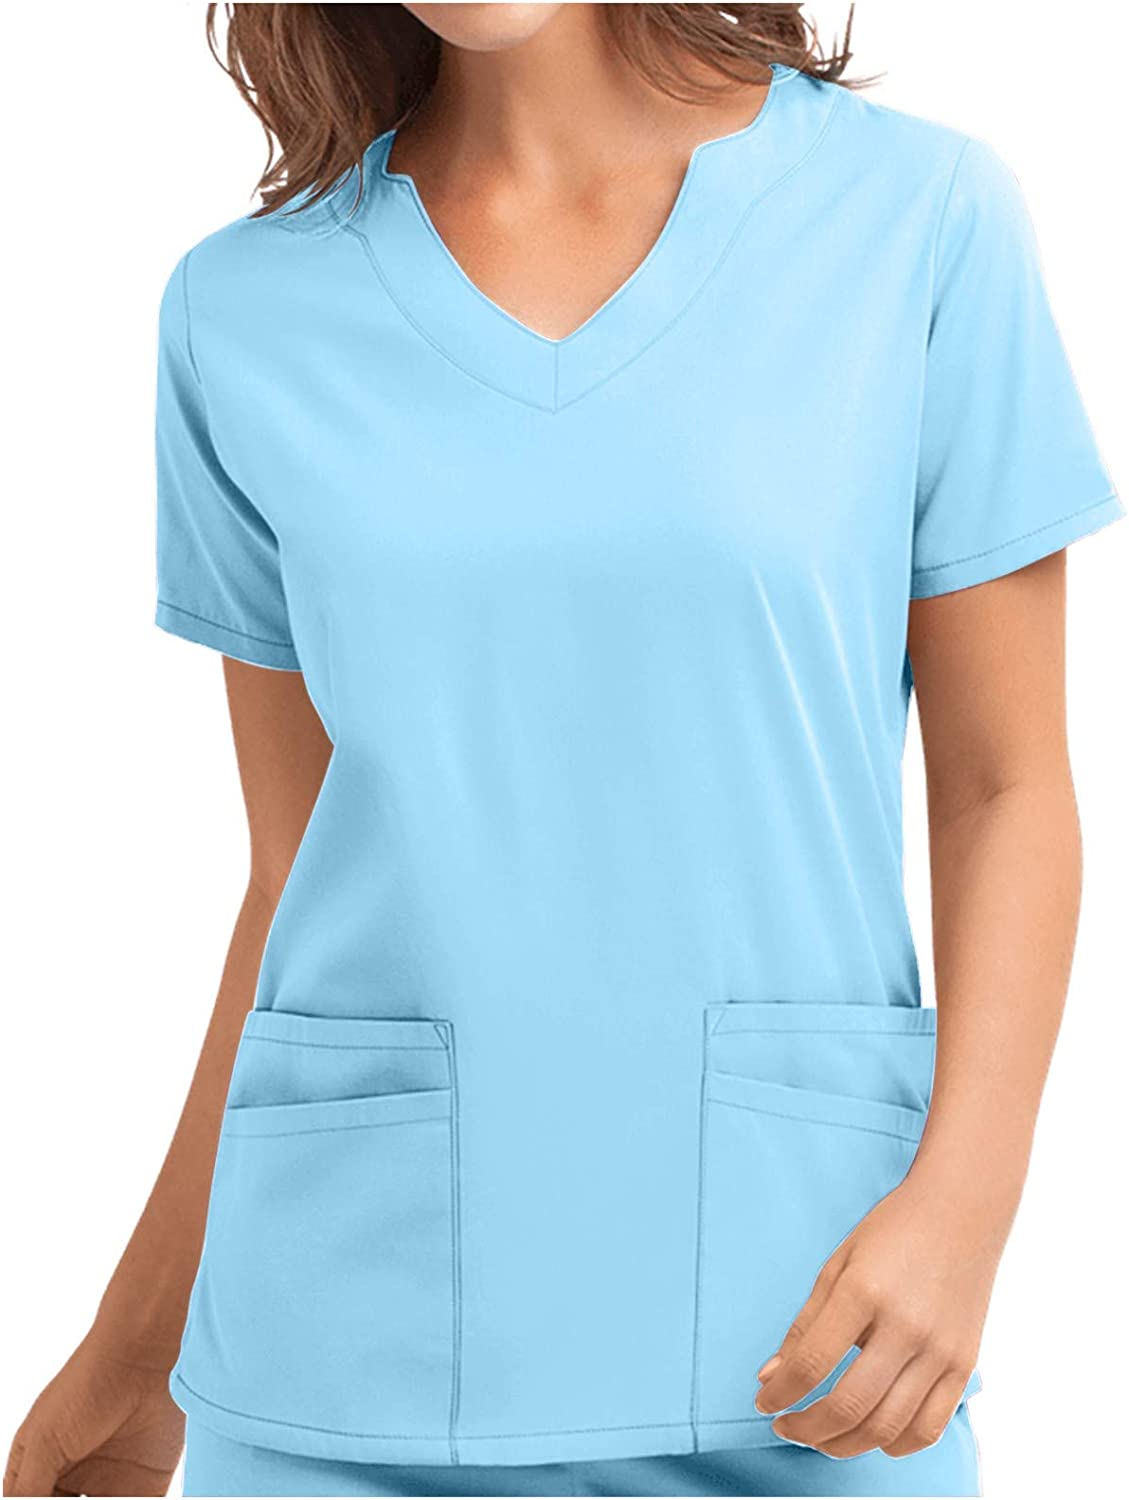 Forwelly Womens Short Sleeve T Shirt Fashion Solid Color V Neck Tee Top Summer Blouse for Work